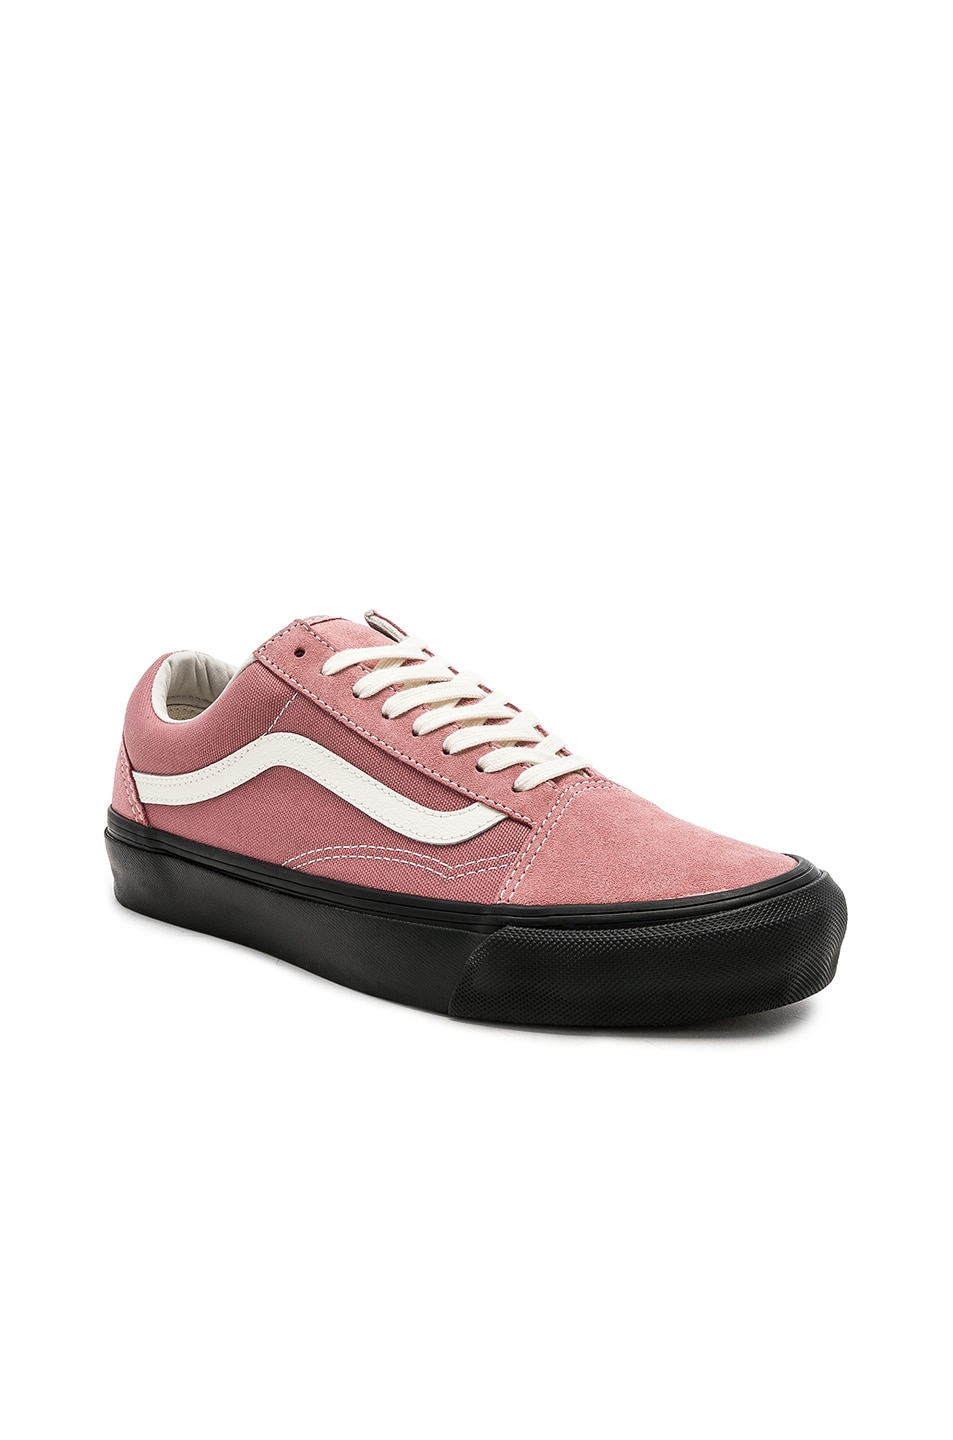 9ae3edbd0737 Image 1 of Vans Vault OG Old Skool LX in Ash Rose   Black